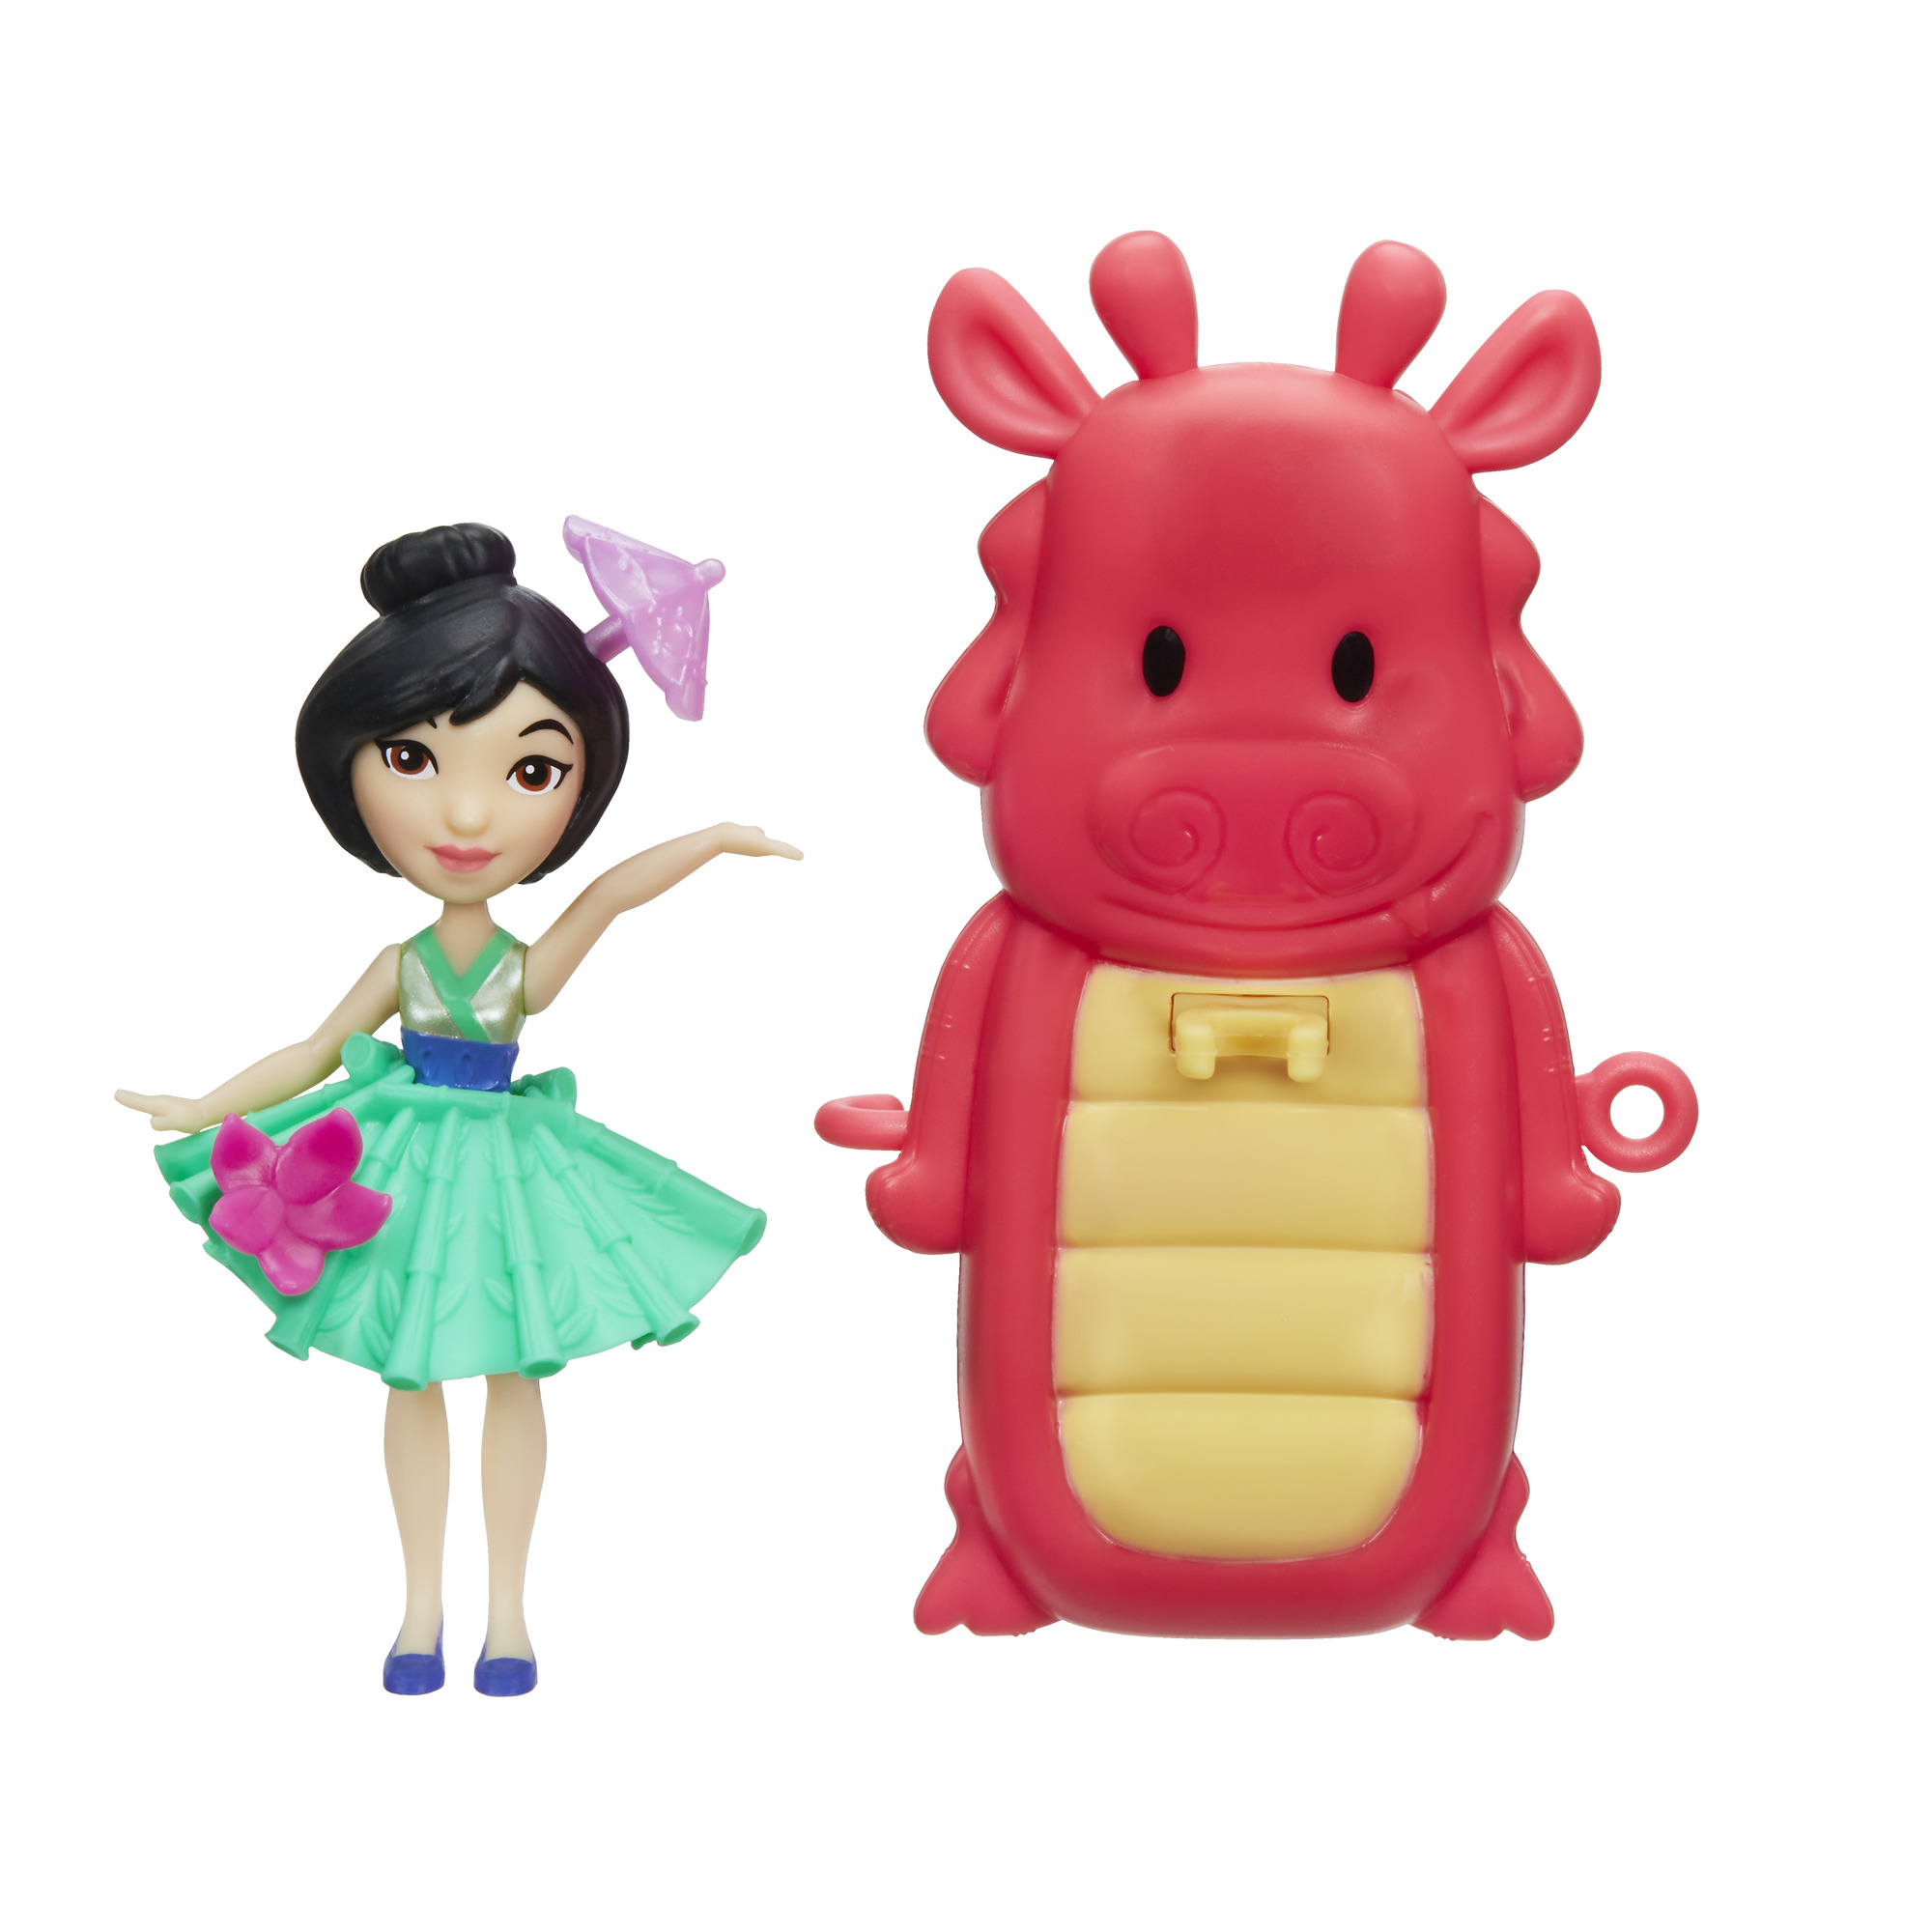 Disney Princess Floating Friends Mulan by Hasbro